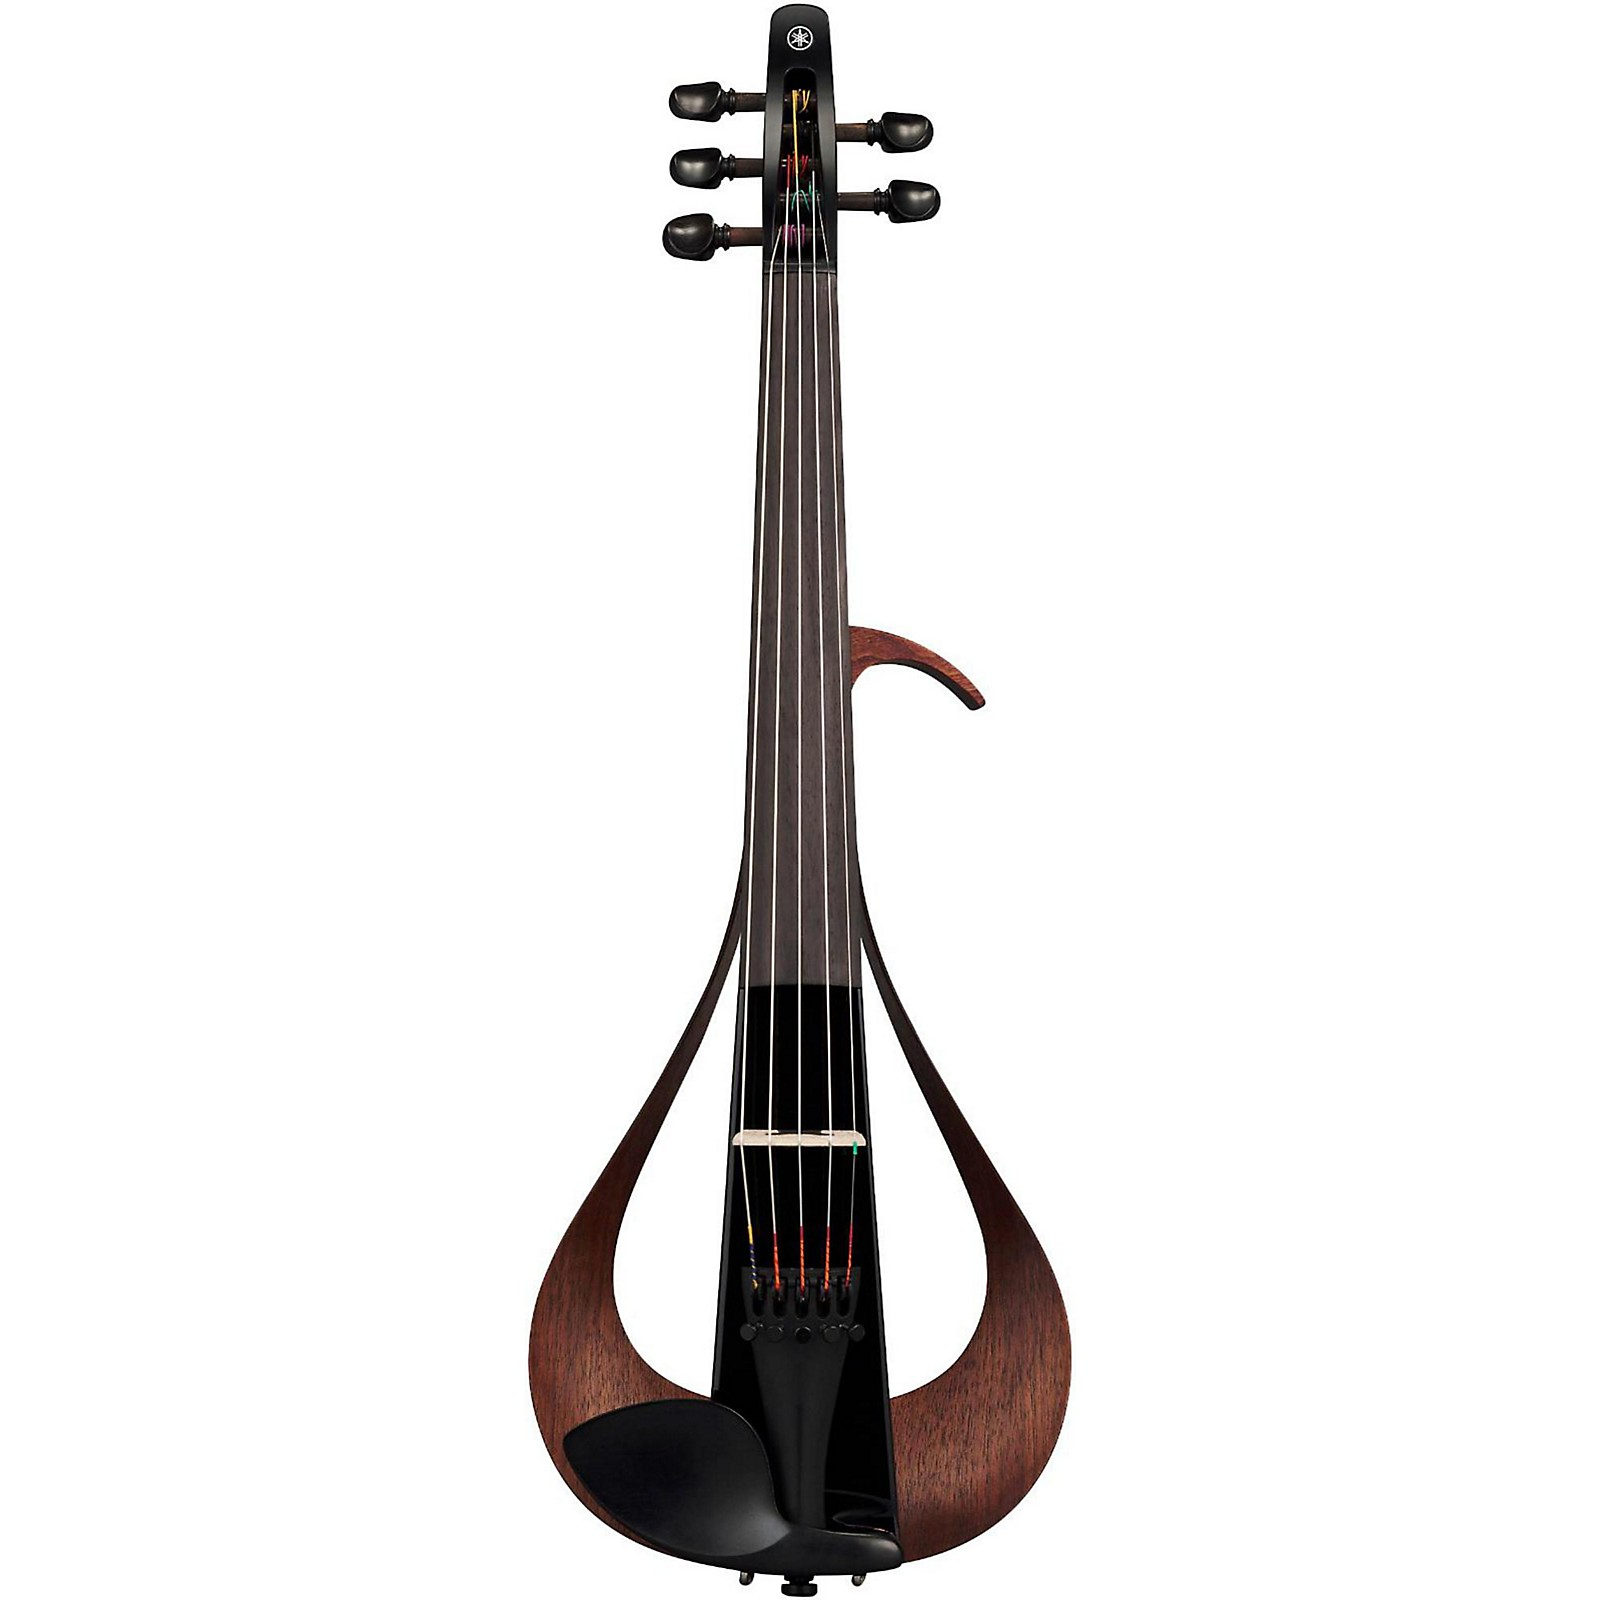 Yamaha YEV105 Series Electric Violin in Black Finish